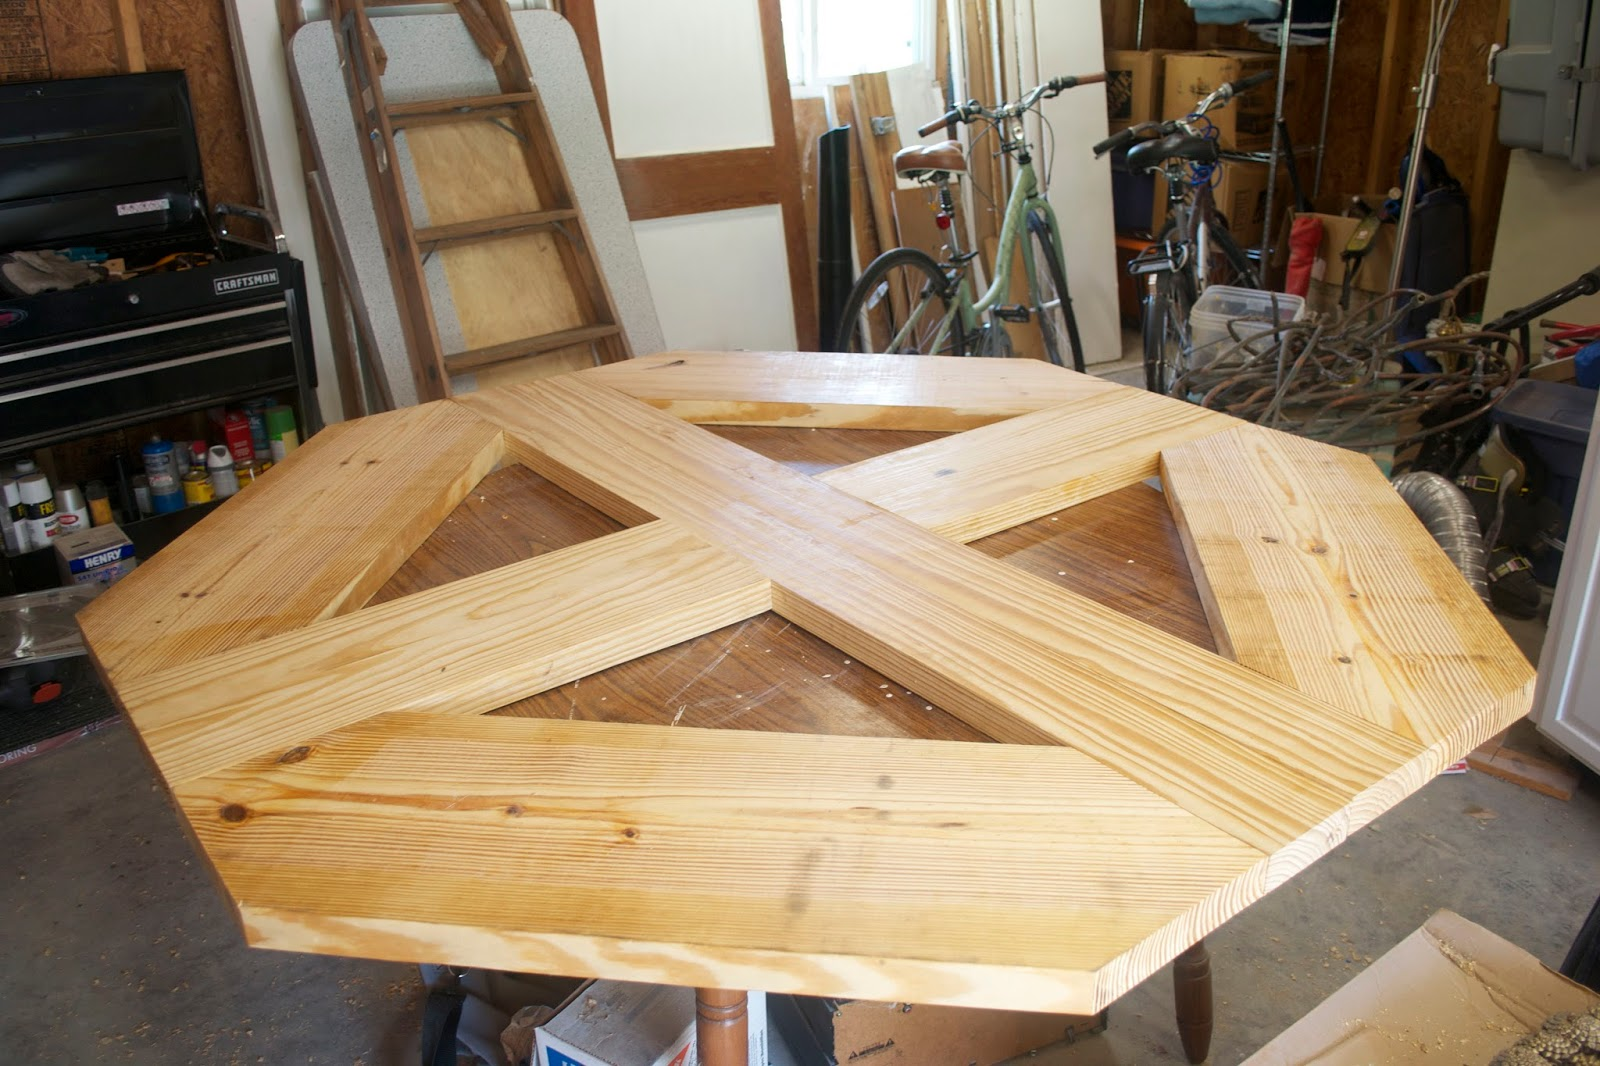 making a dining room table | CK and Nate header: Building a Dining Room Table Top